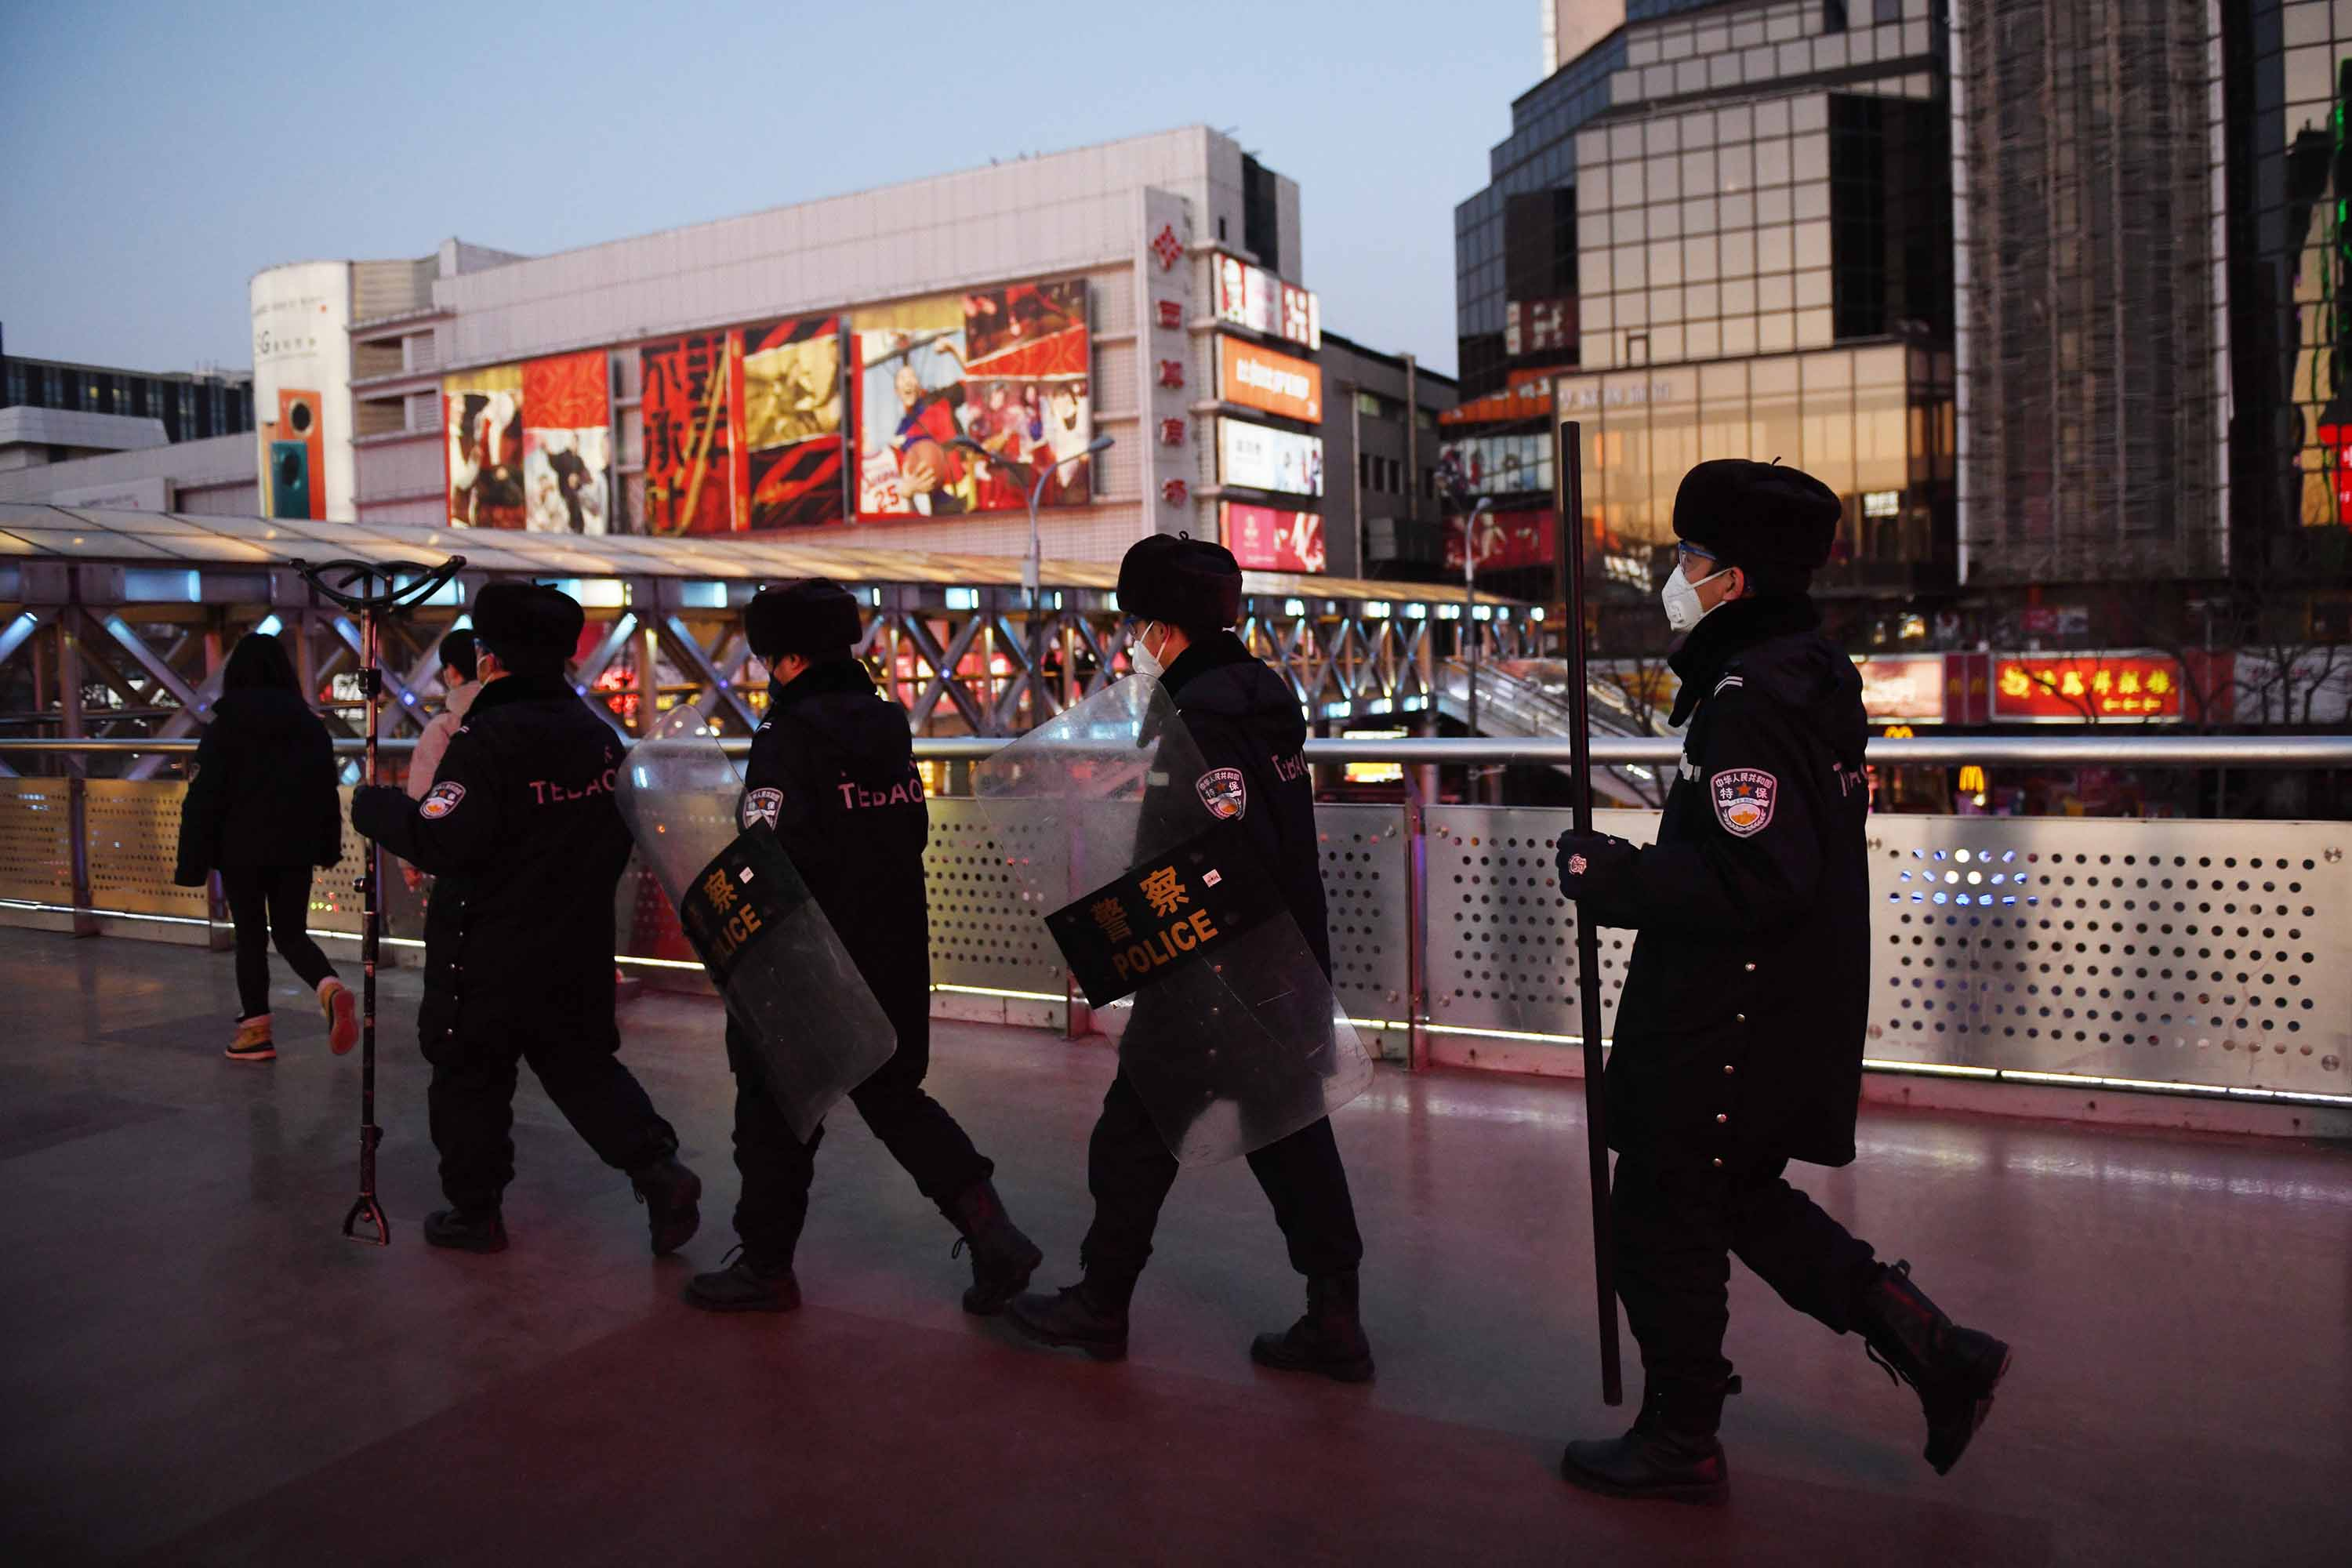 Security guards wearing protective masks patrol a shopping area in Beijing on Monday.